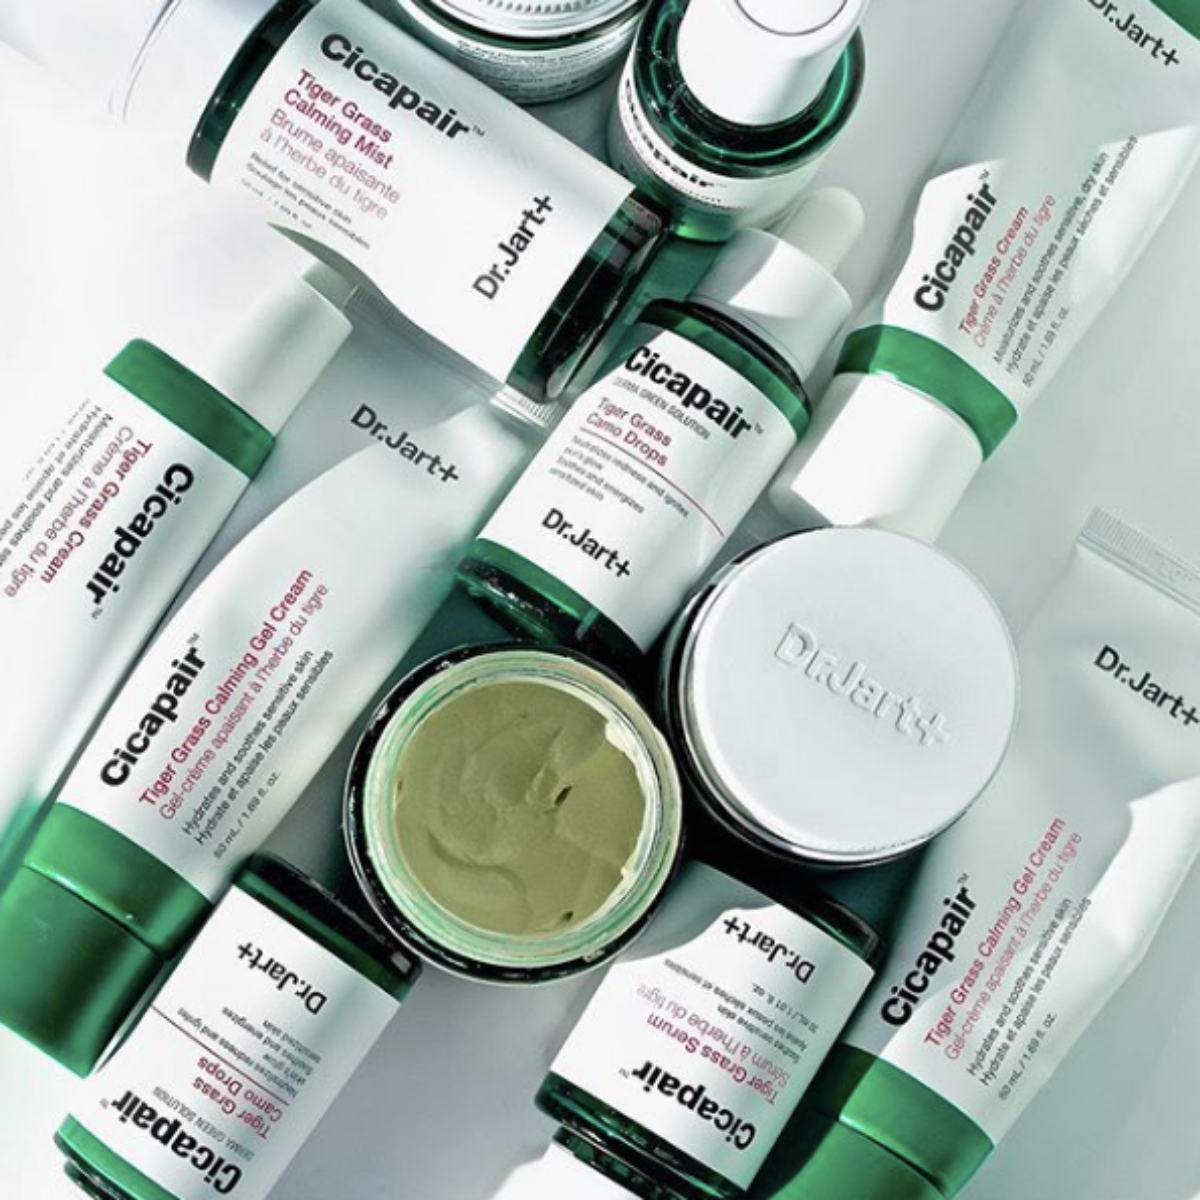 New and improved Dr.Jart+ Cicapair collection. Image source:  @Drjart